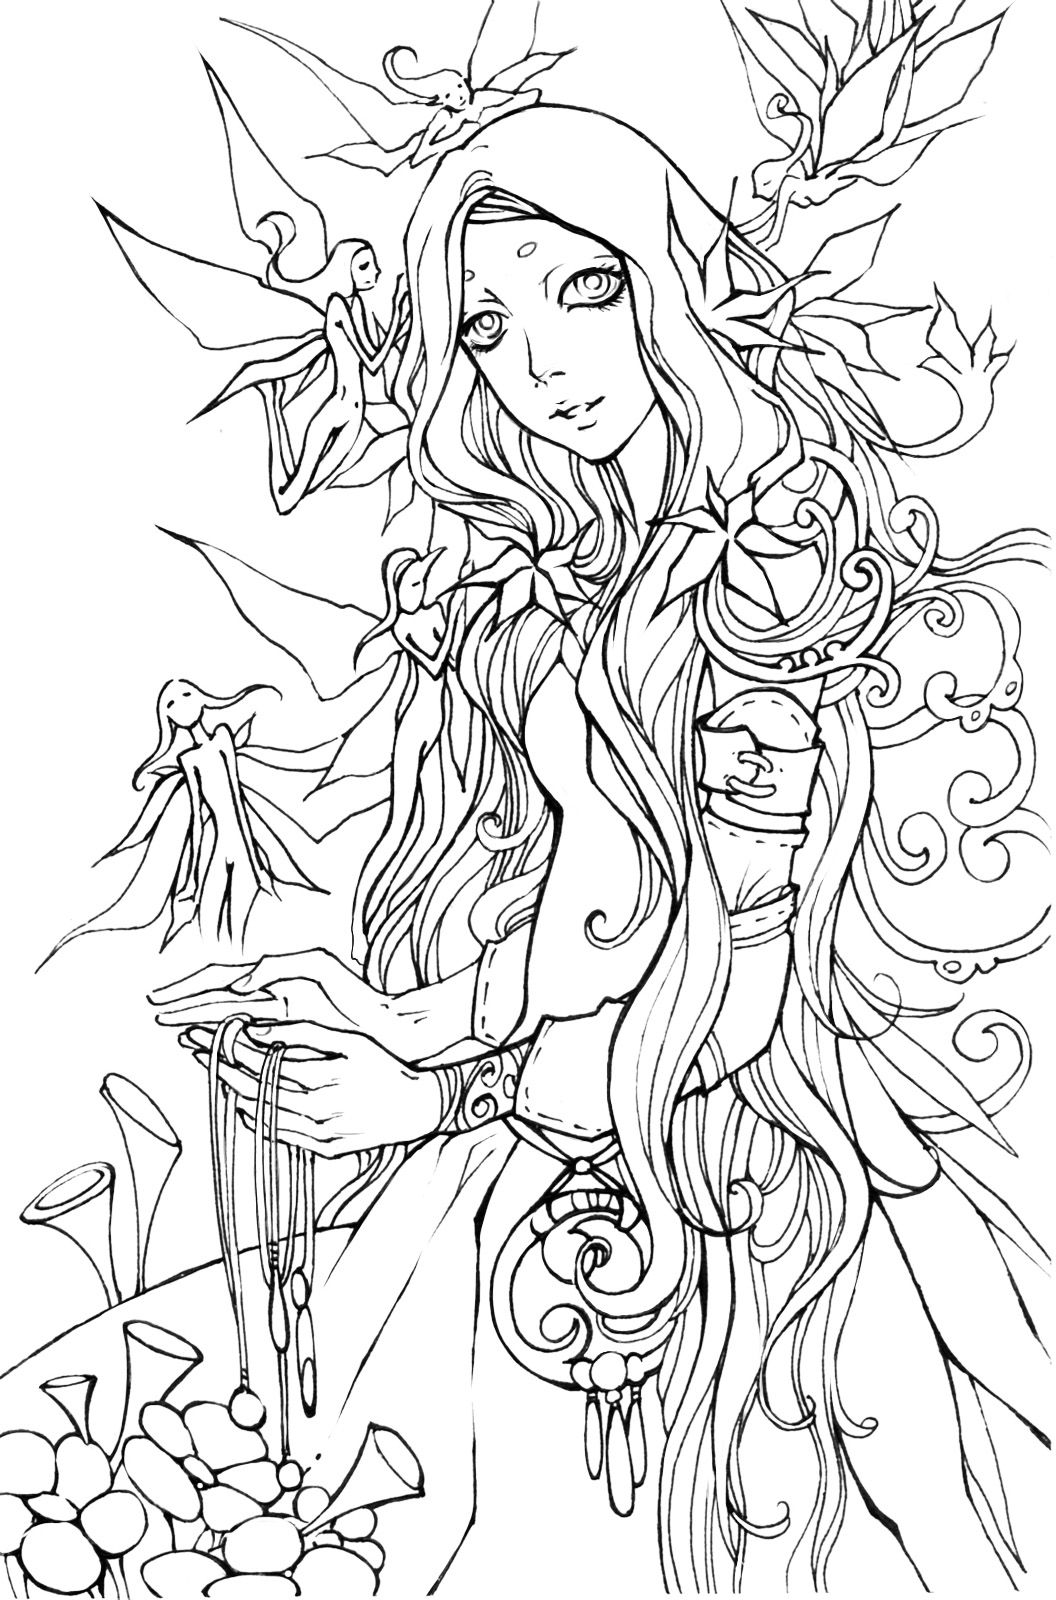 manga fairy coloring pages - flower girl 2 by haalu on deviantart